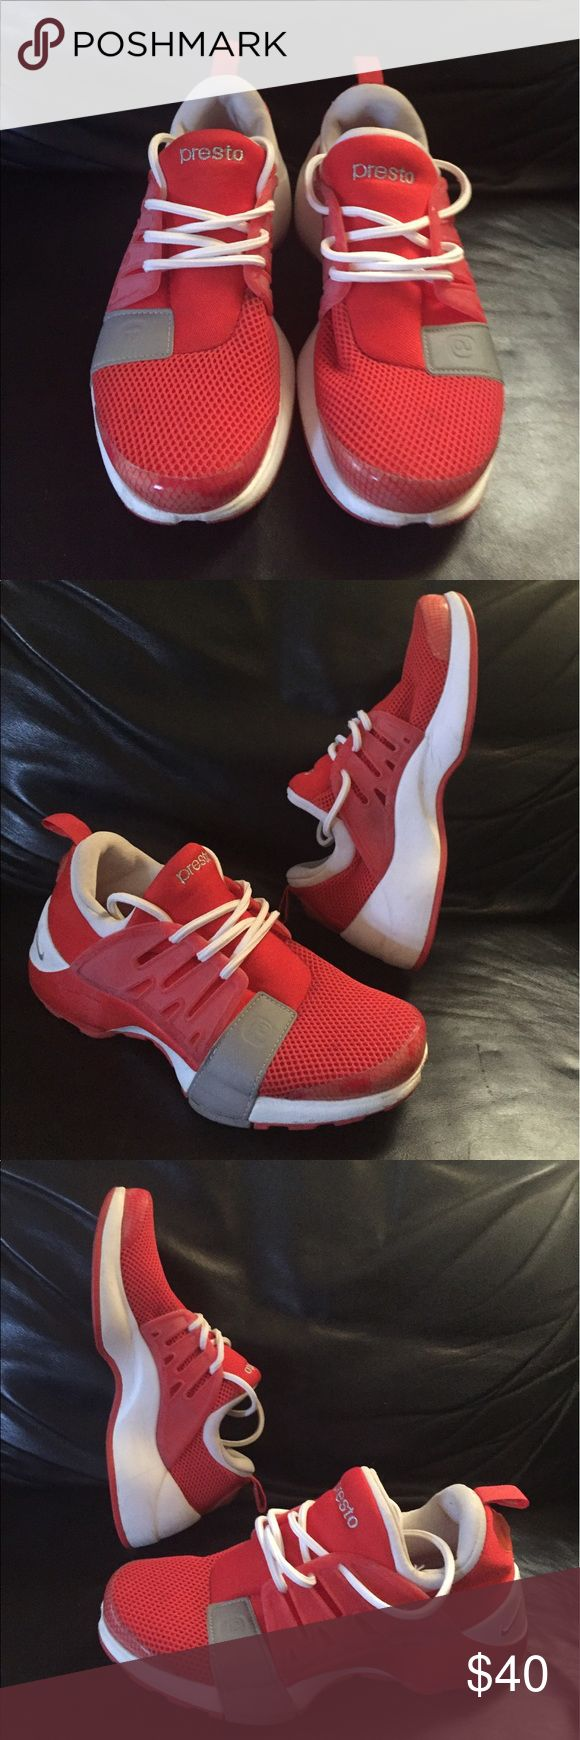 Red & White NIKE PRESTO Sneaker Sz 9 For your consideration is a red and white NIKE PRESTO Sz 9. Sneaker is neoprene/rubber with  light sights of use. Message with questions and thanks for stopping by. Nike Shoes Sneakers